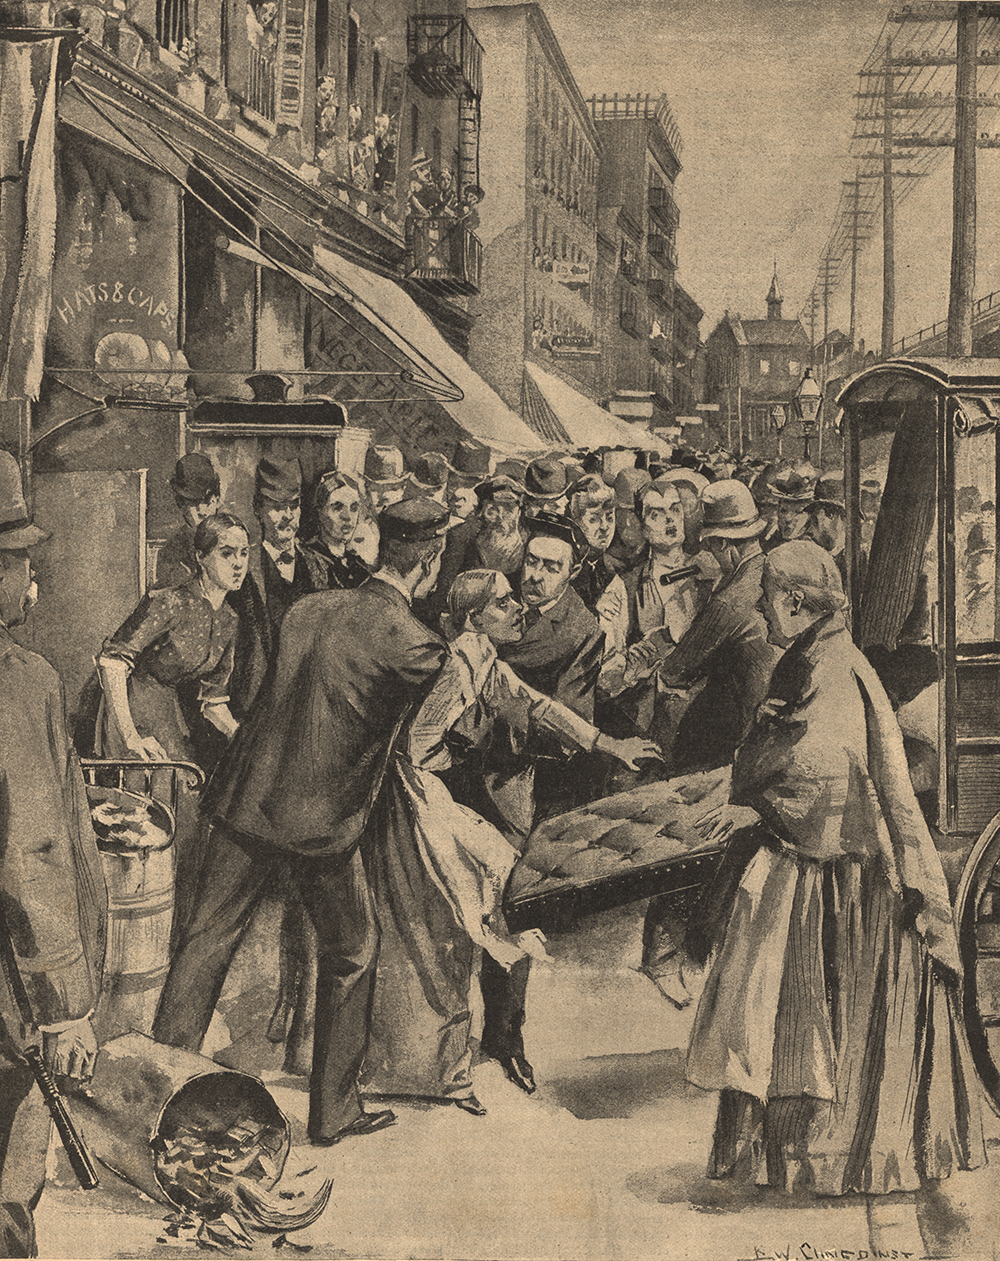 The Cholera Invasion, from Frank Leslie's Illustrated Weekly, by West B. Clinedinst, 1892. National Library of Medicine.